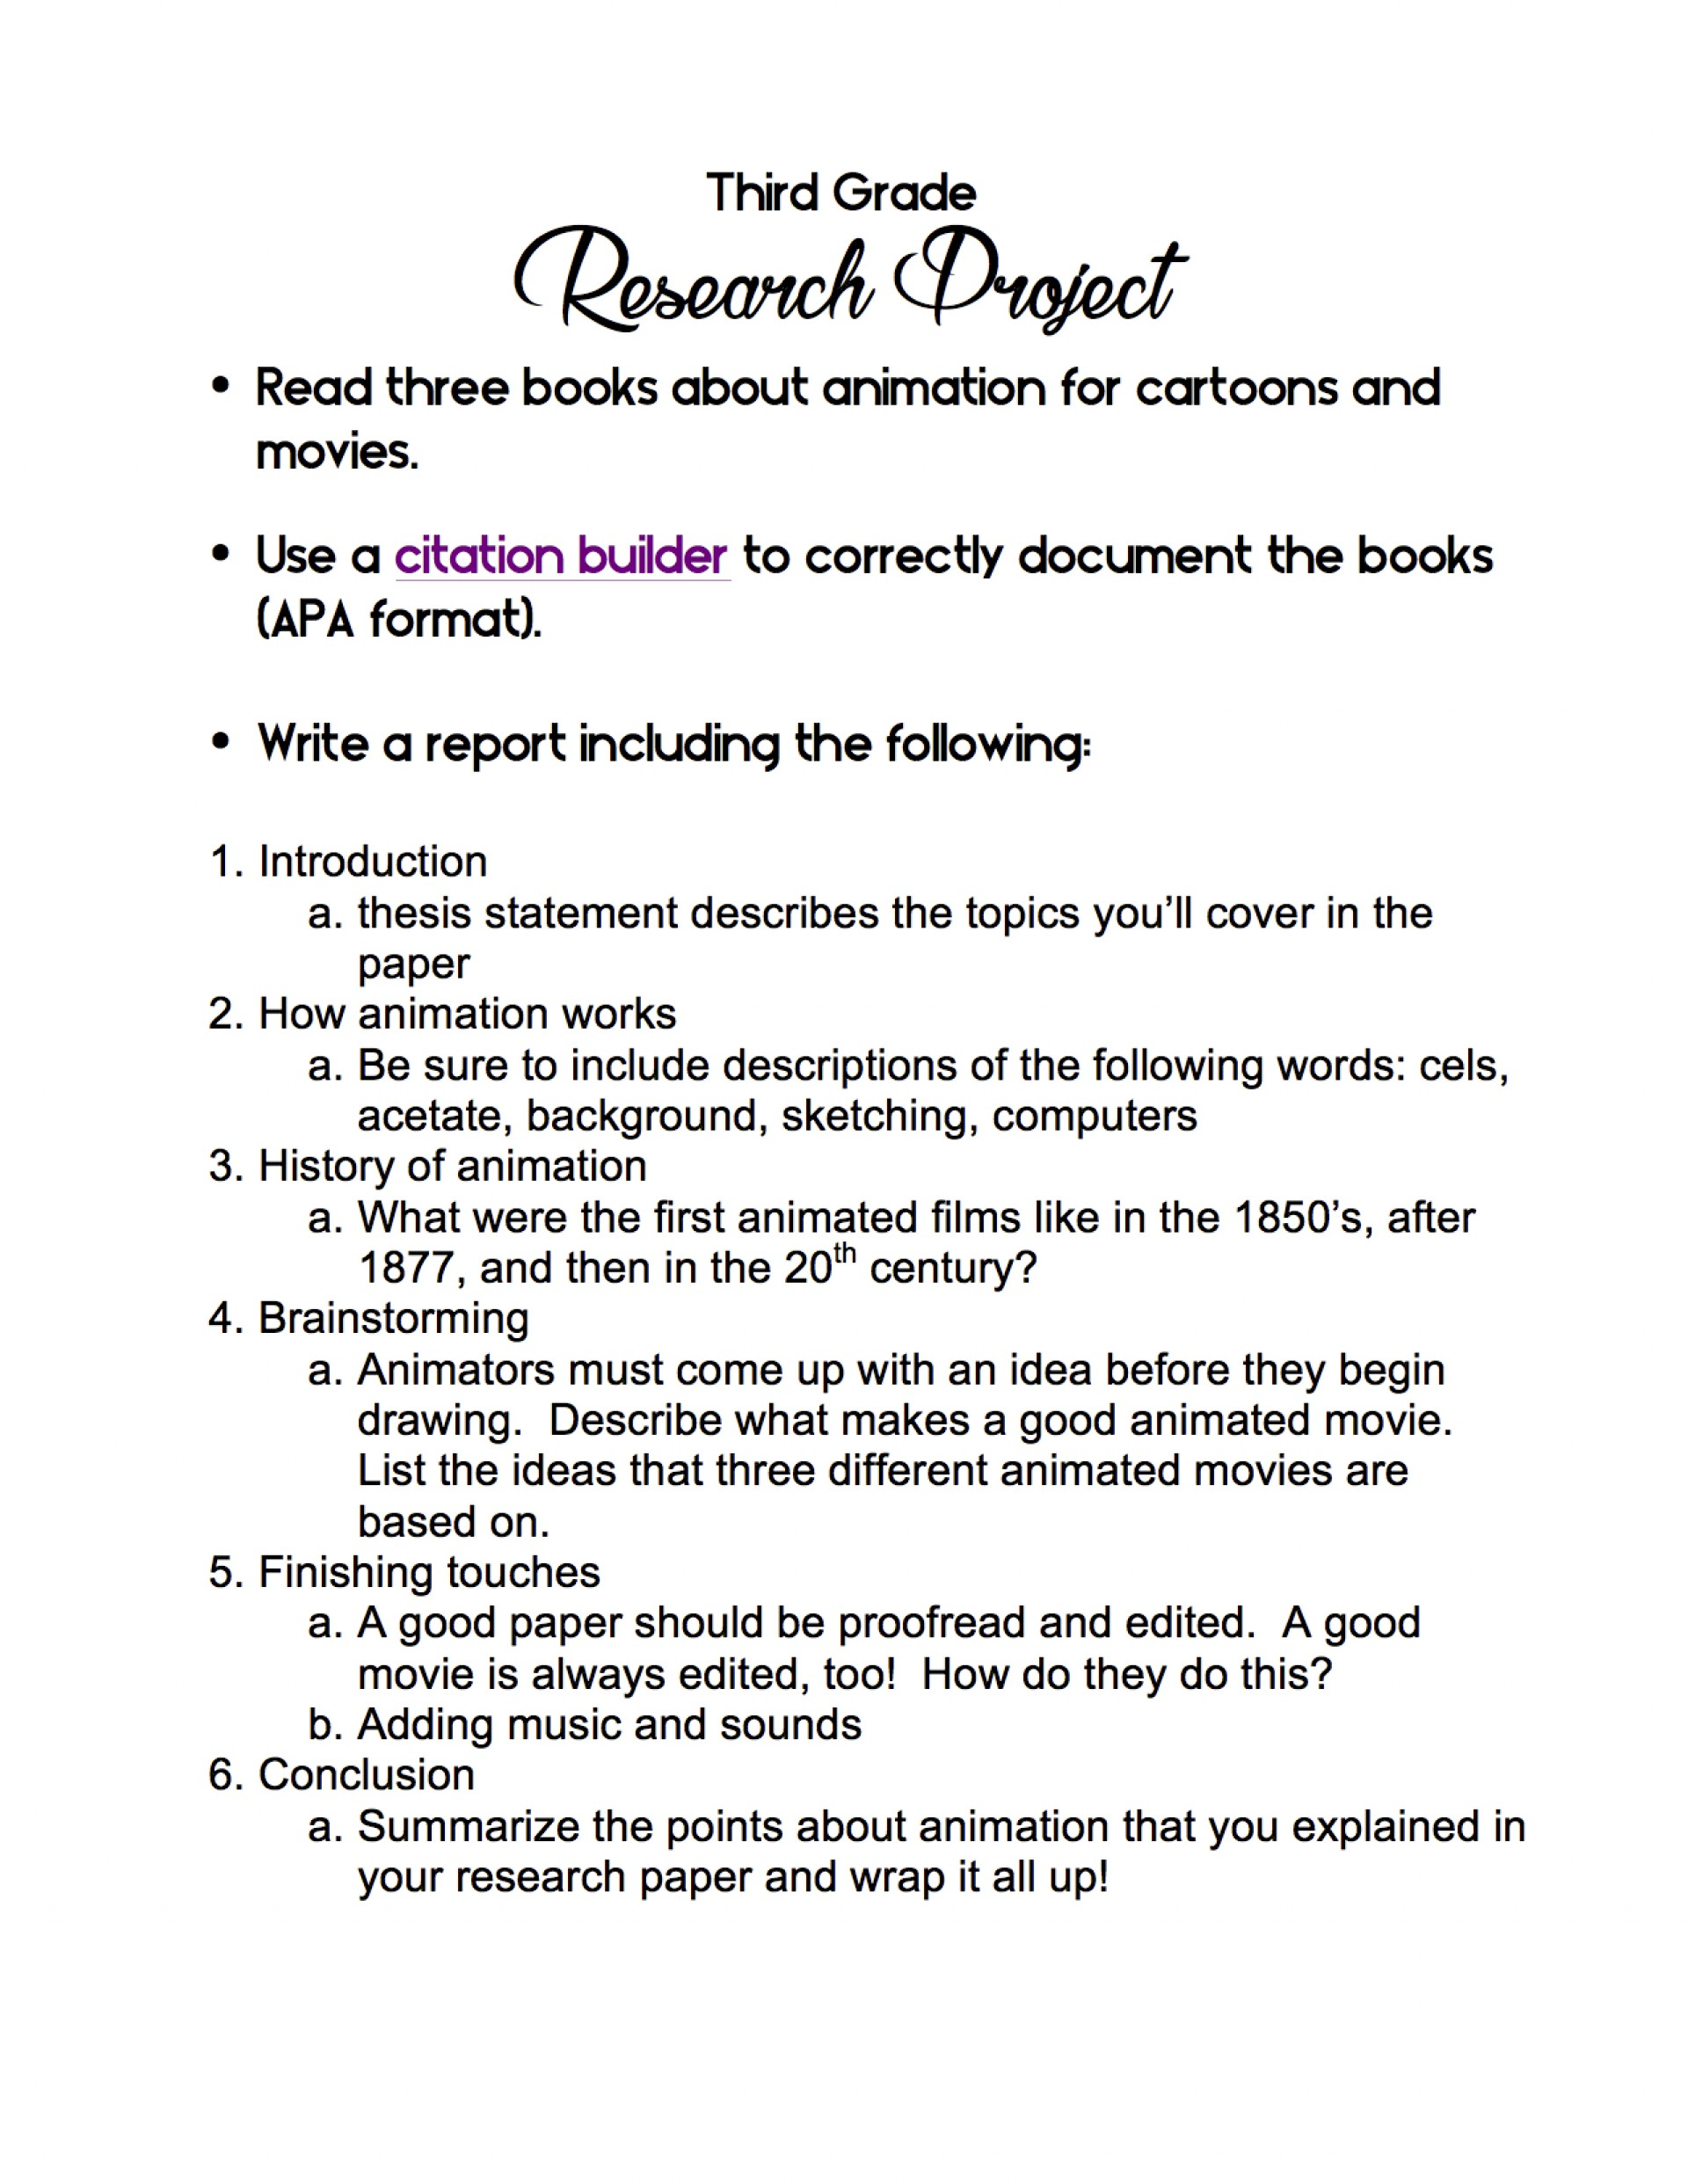 002 Research Paper Cancer Ideas 3rd Grade Shocking Topic 1920